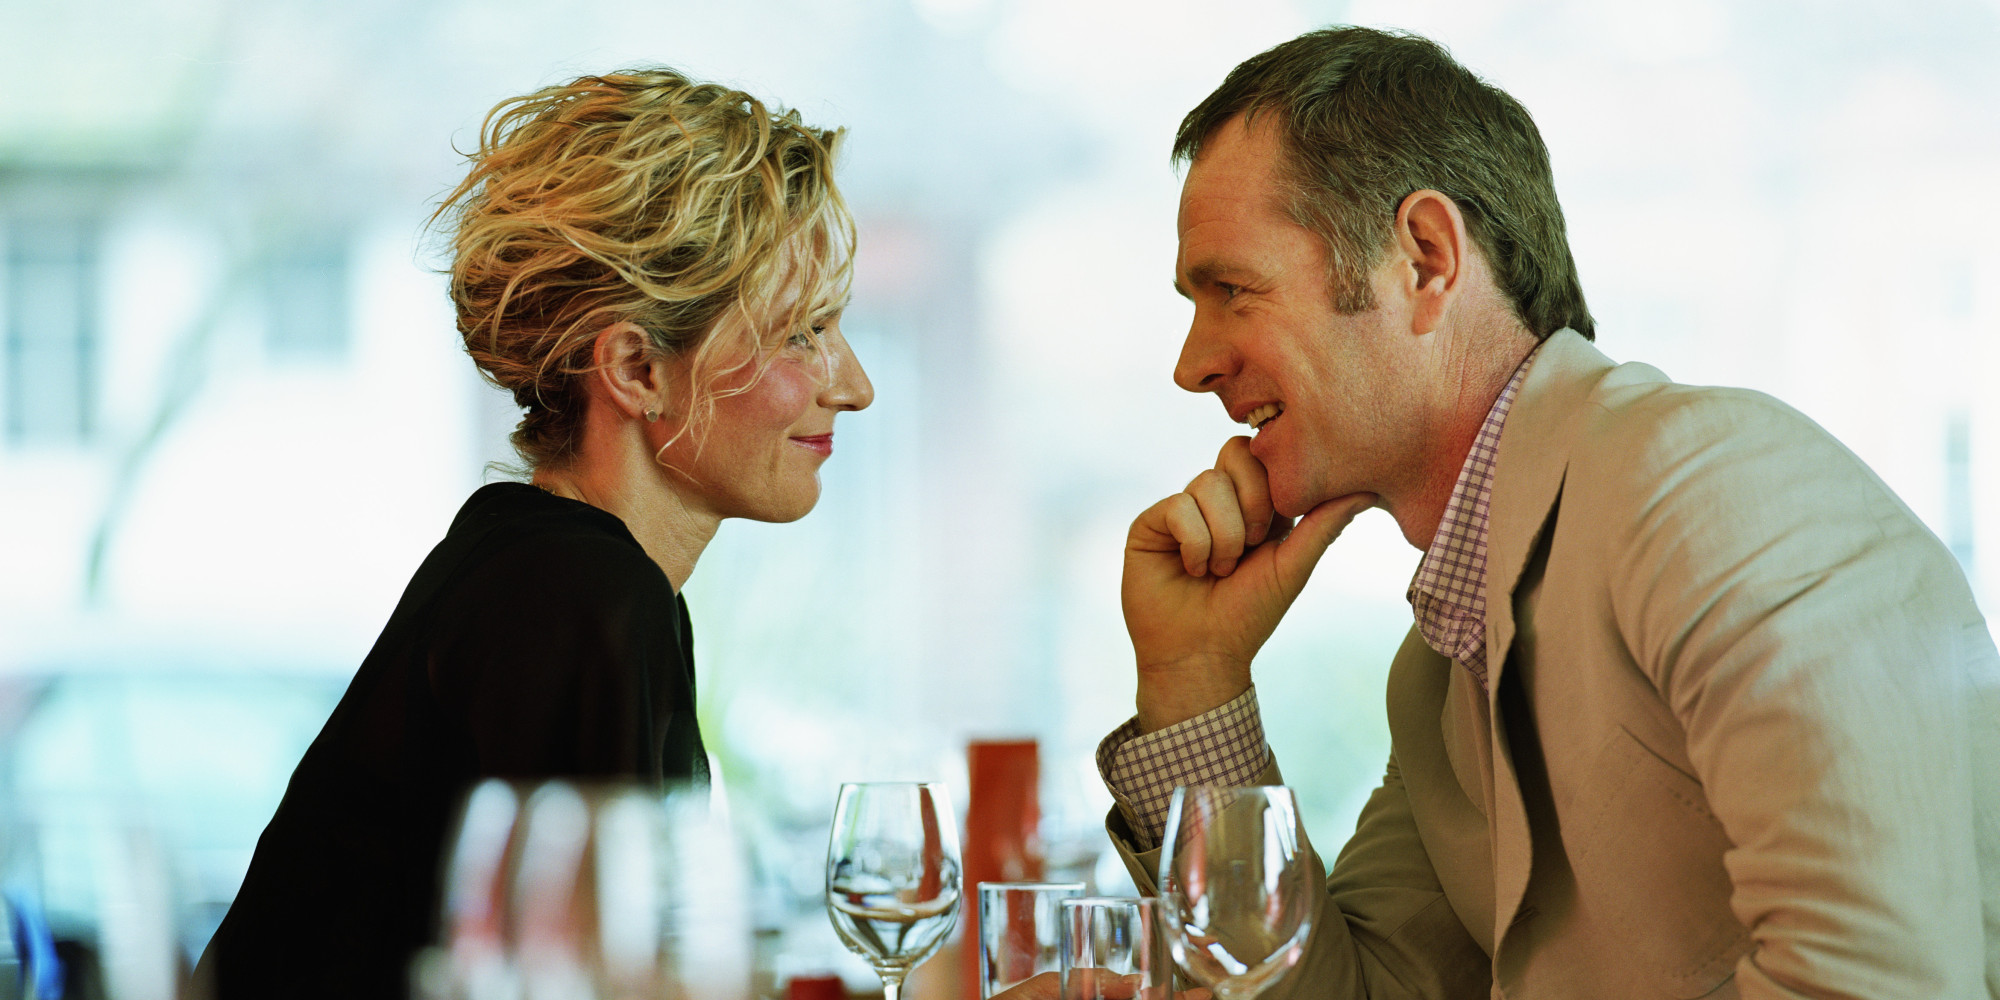 Best dating sights for men over 50